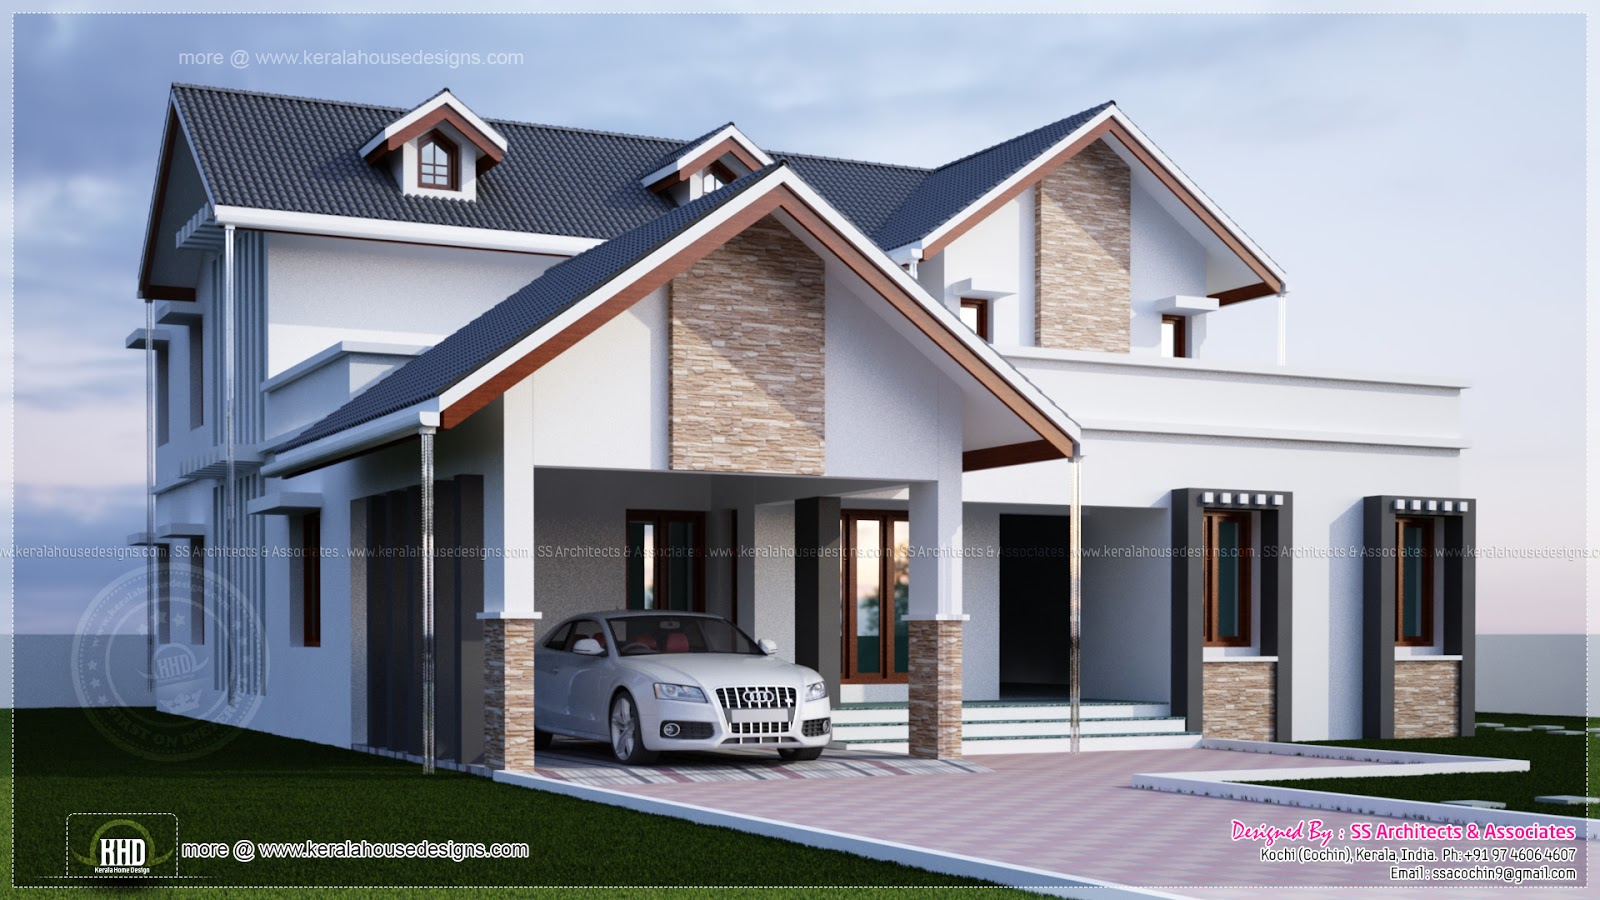 House interior ideas in 3d rendering keralahousedesigns for Project home designs